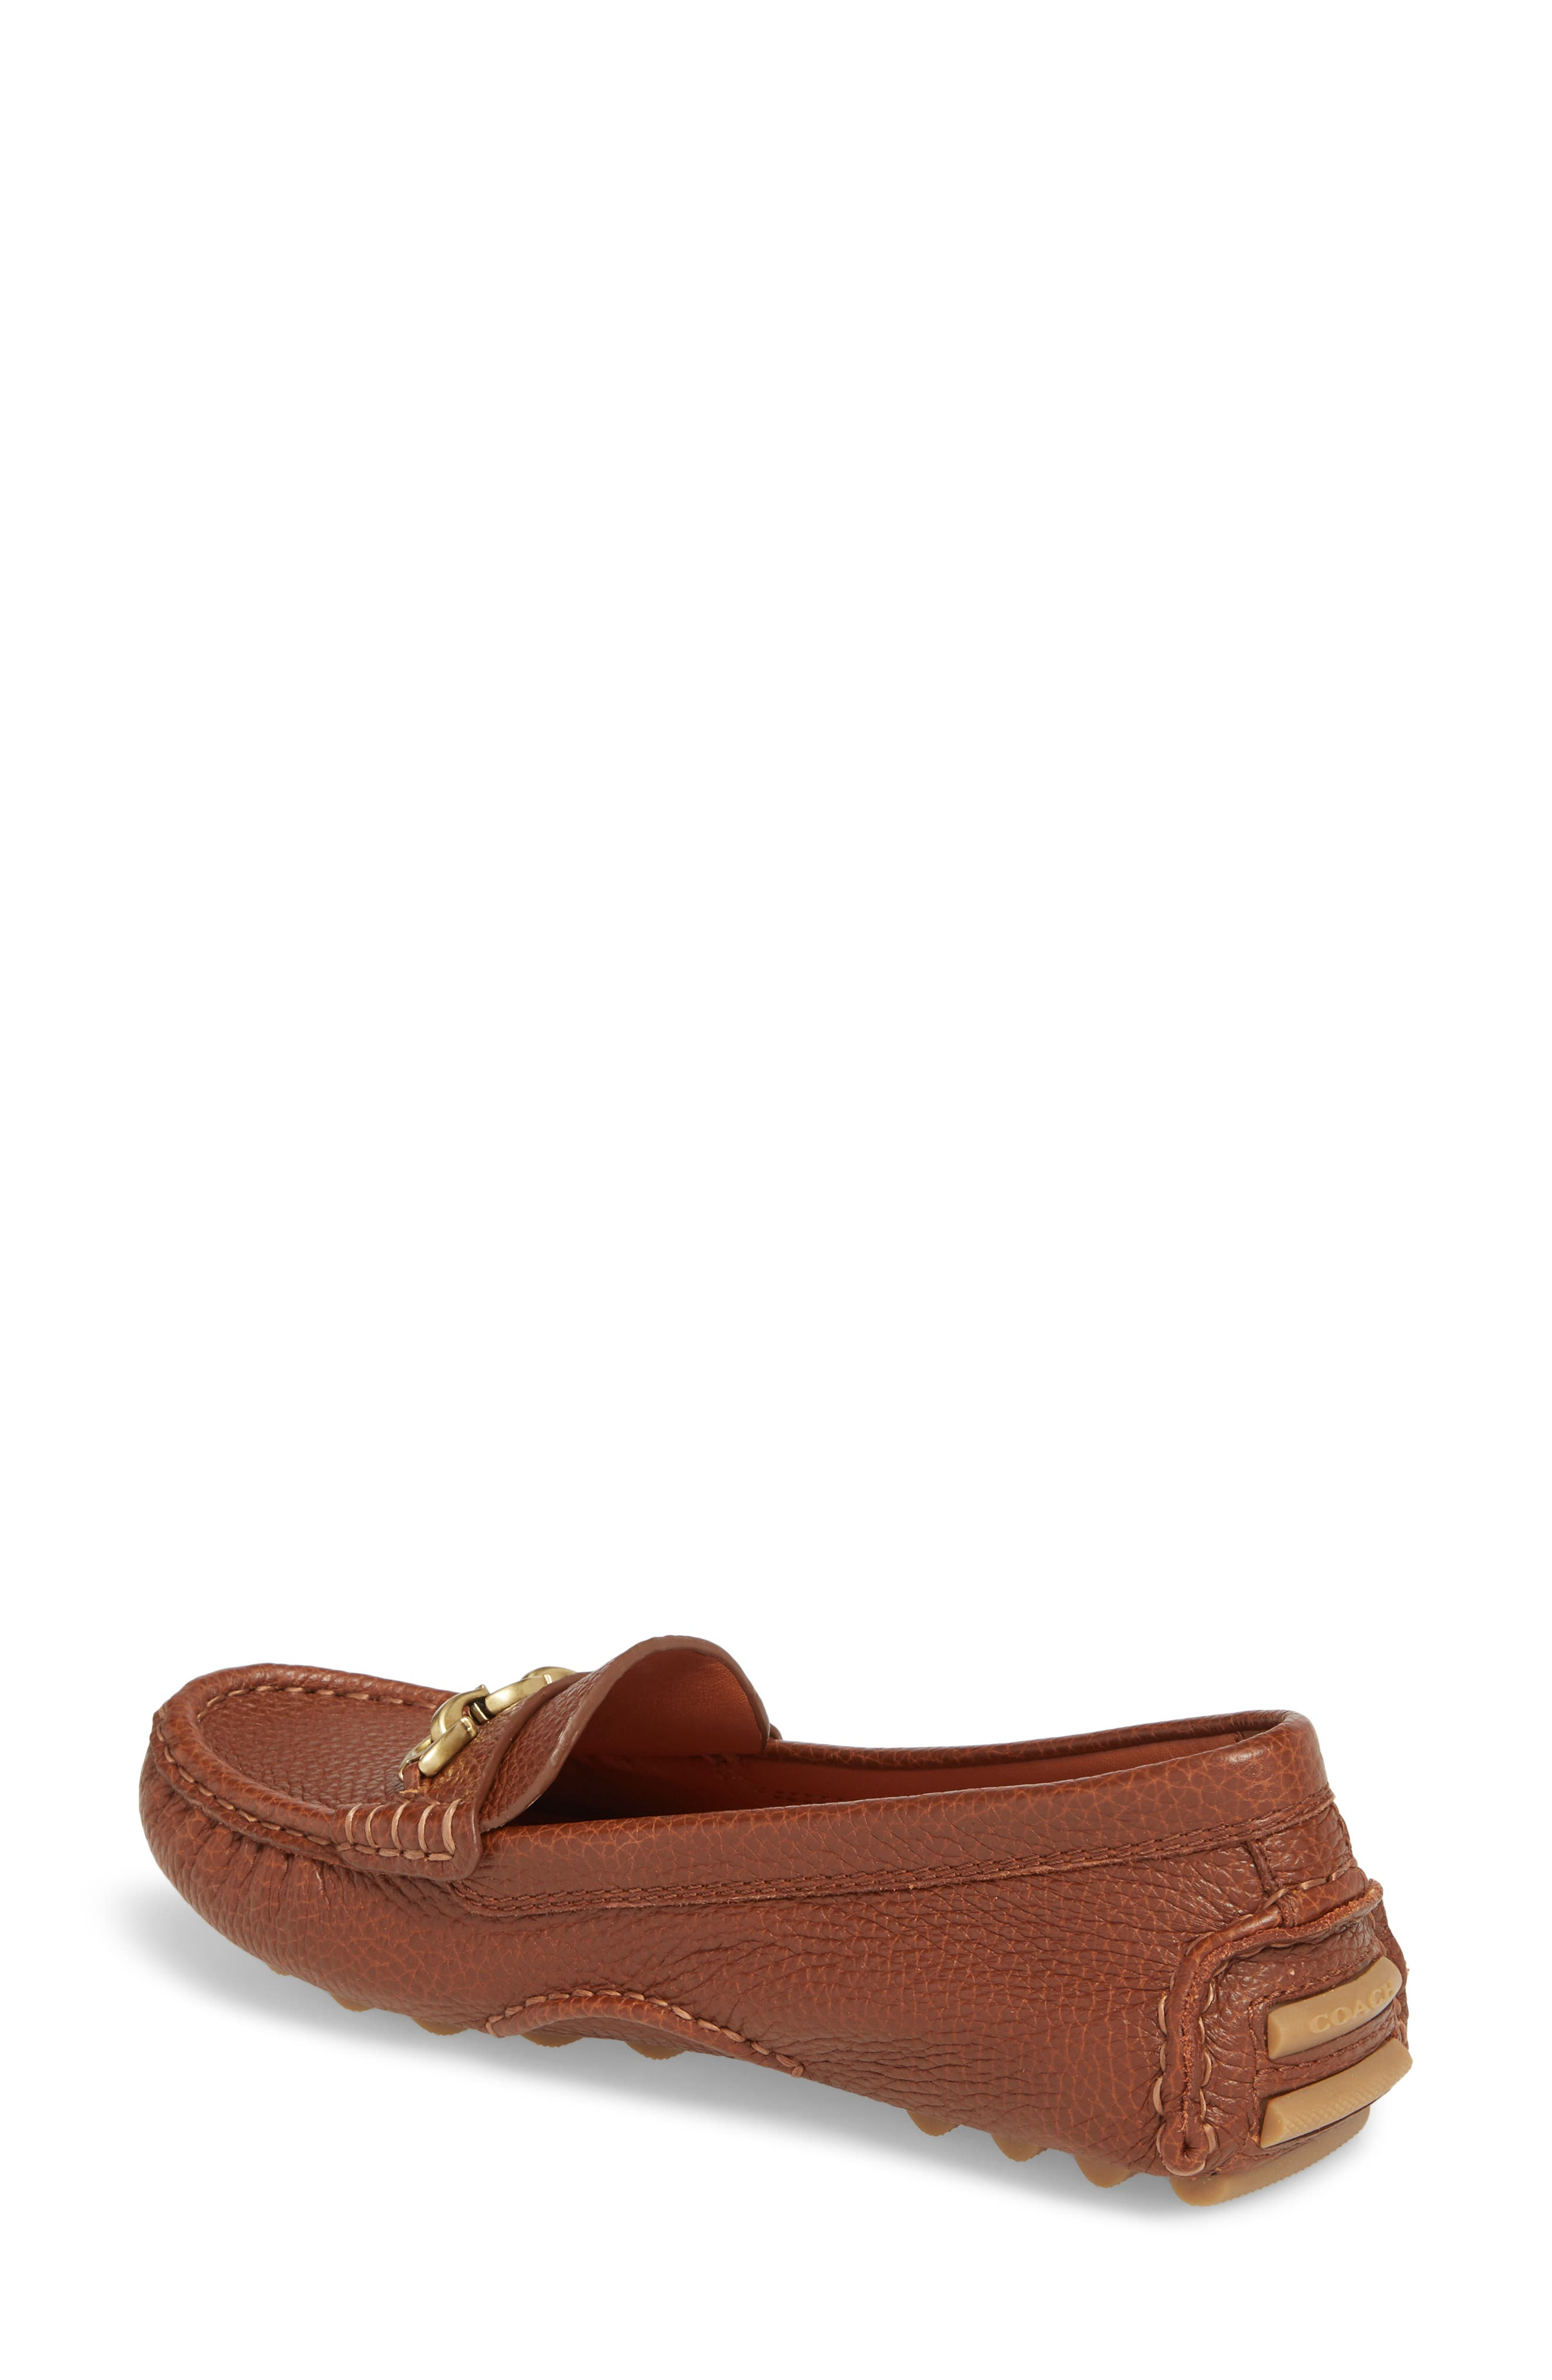 Crosby Driver Loafer,                             Alternate thumbnail 2, color,                             LION PEBBLED LEATHER